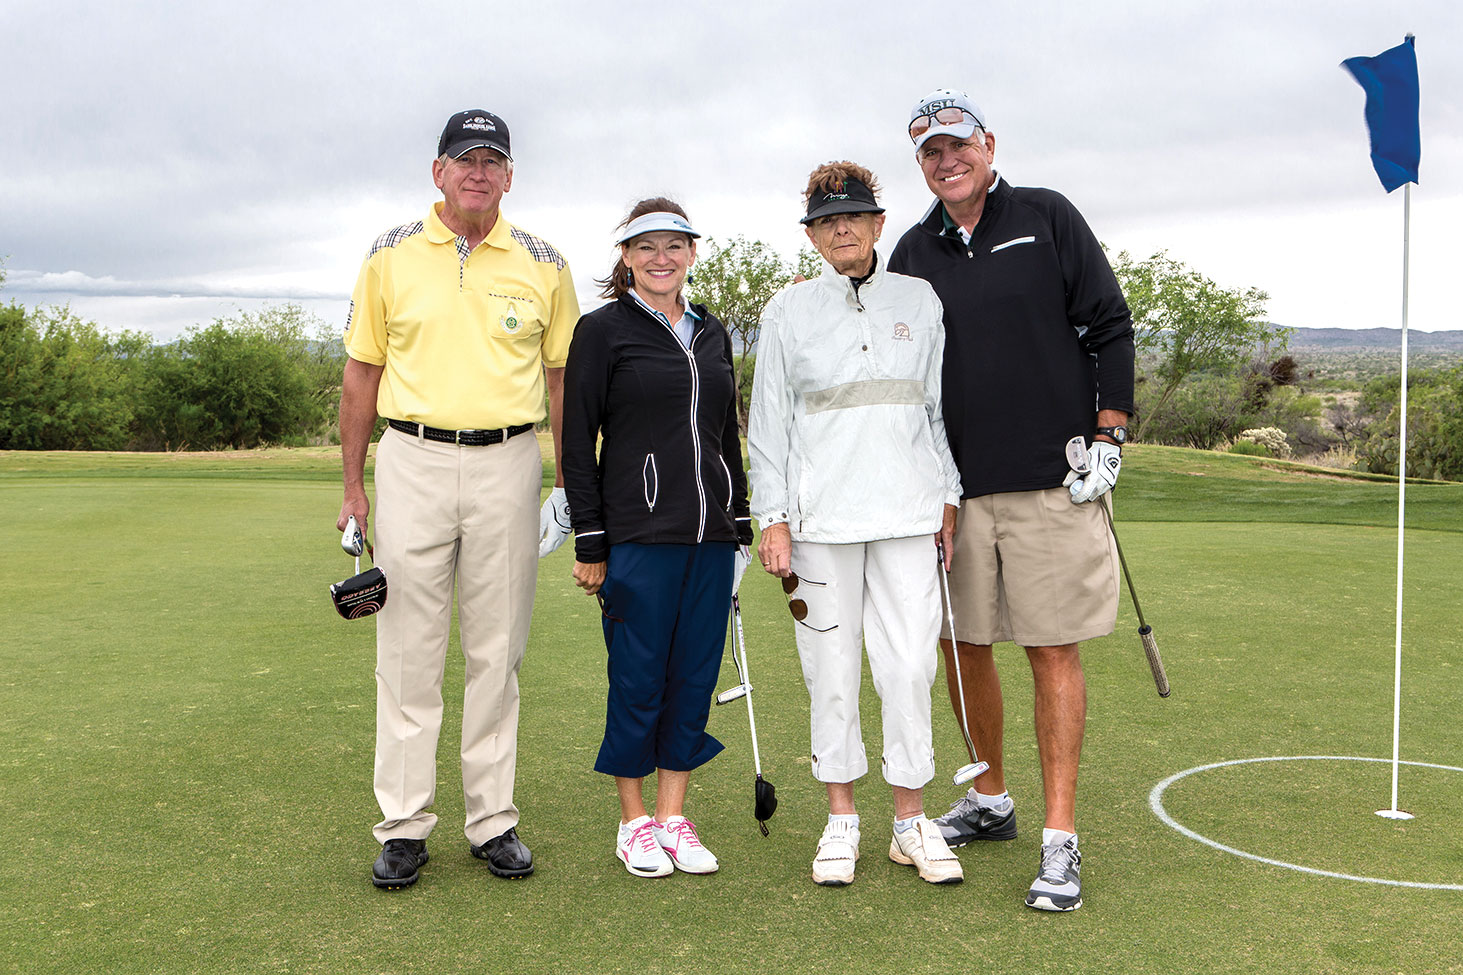 Second place from left are Richard Osterlund, Jeanne Osterlund, June Nichols and Dave Bott